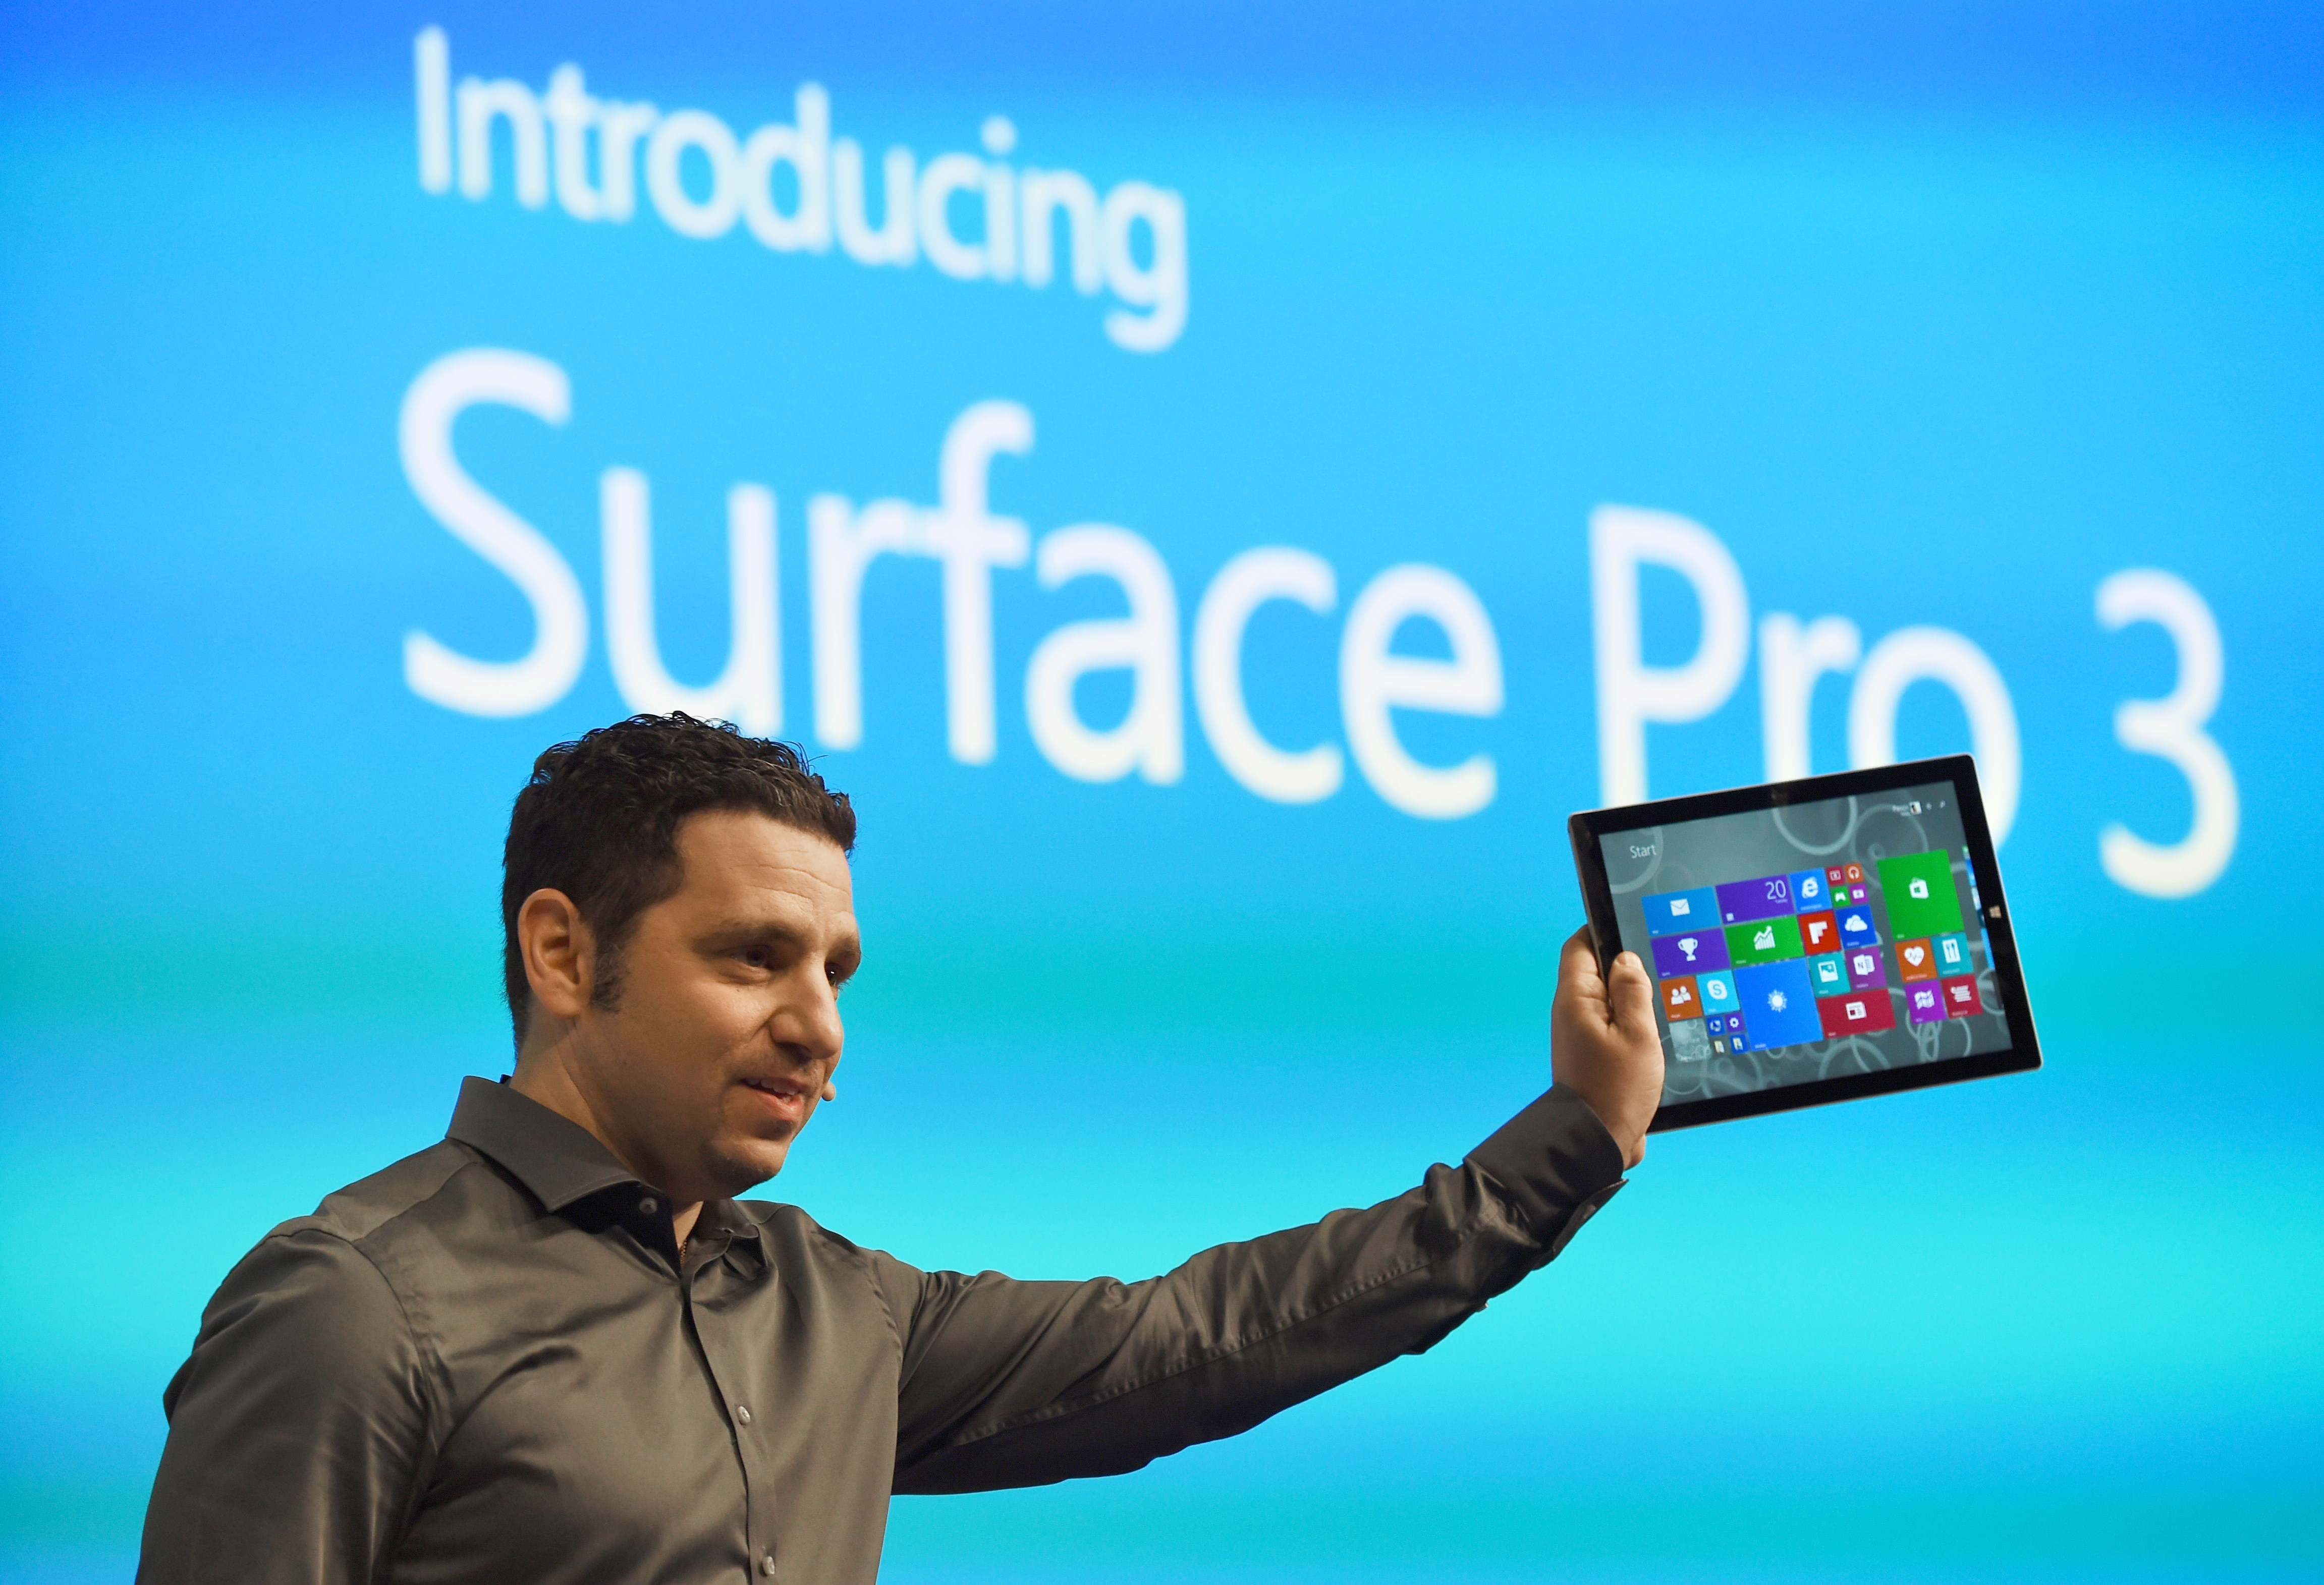 Panos Panay, corporate vice president with Microsoft's Surface division, holds the new Microsoft Surface Pro 3 tablet computer during a press conference May 20, 2014 in New York.